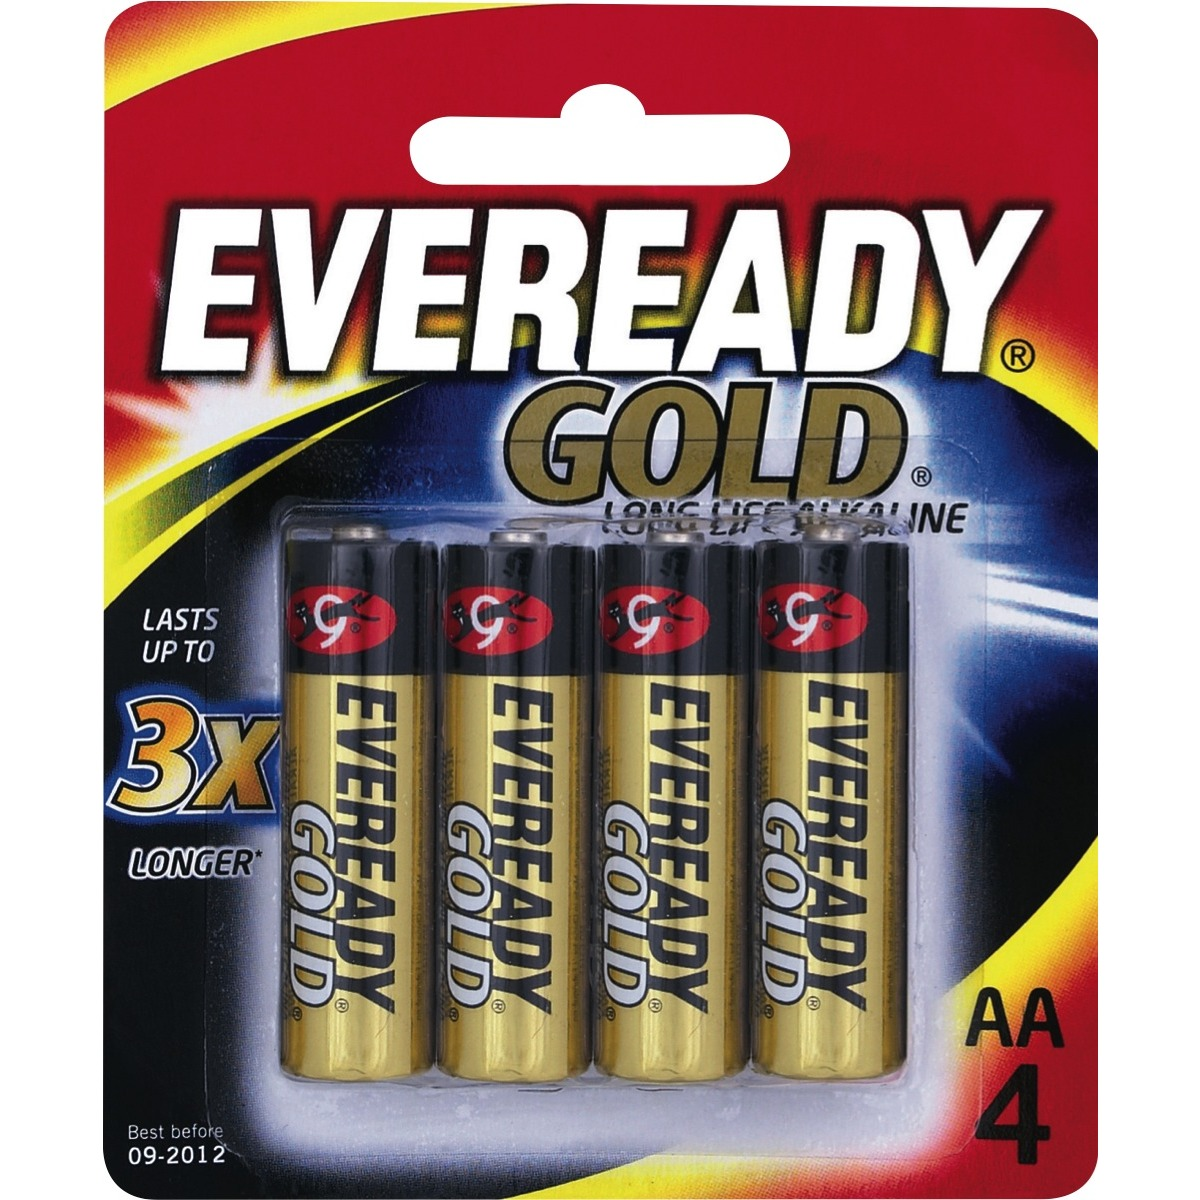 Eveready AA battery, 4 pack